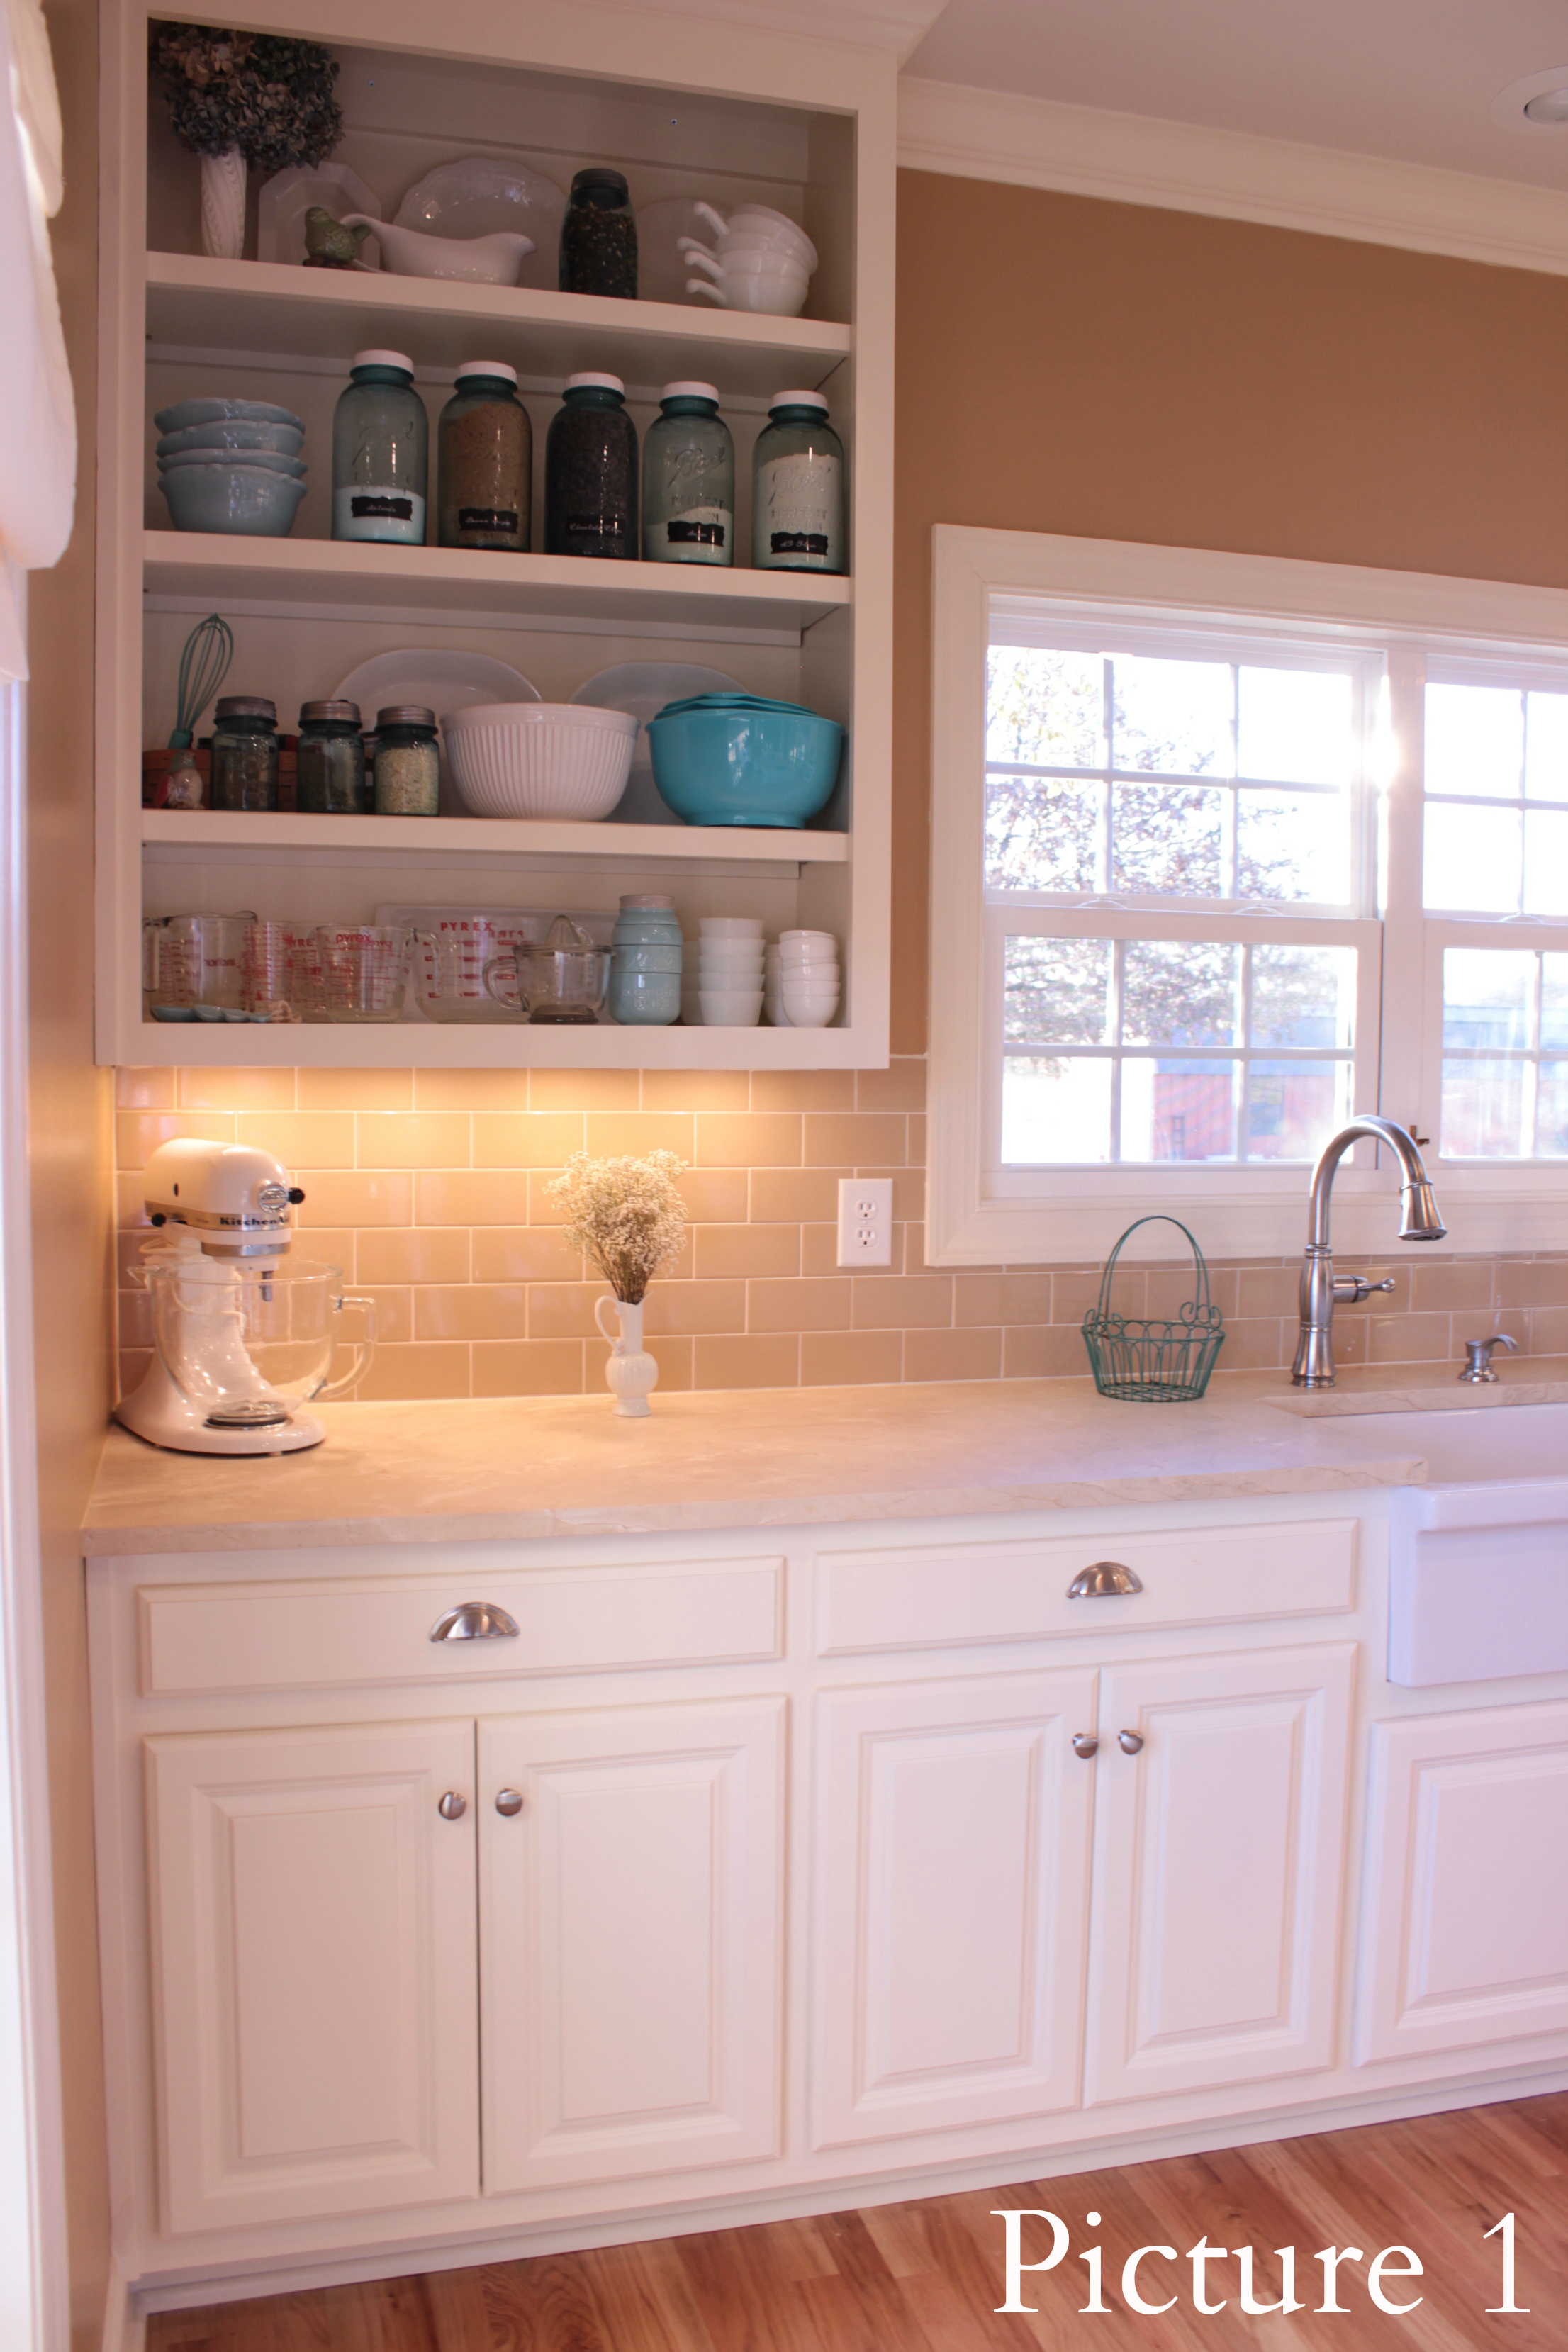 our kitchen remodel reveal: practical and pretty | | wildflowers and marbles